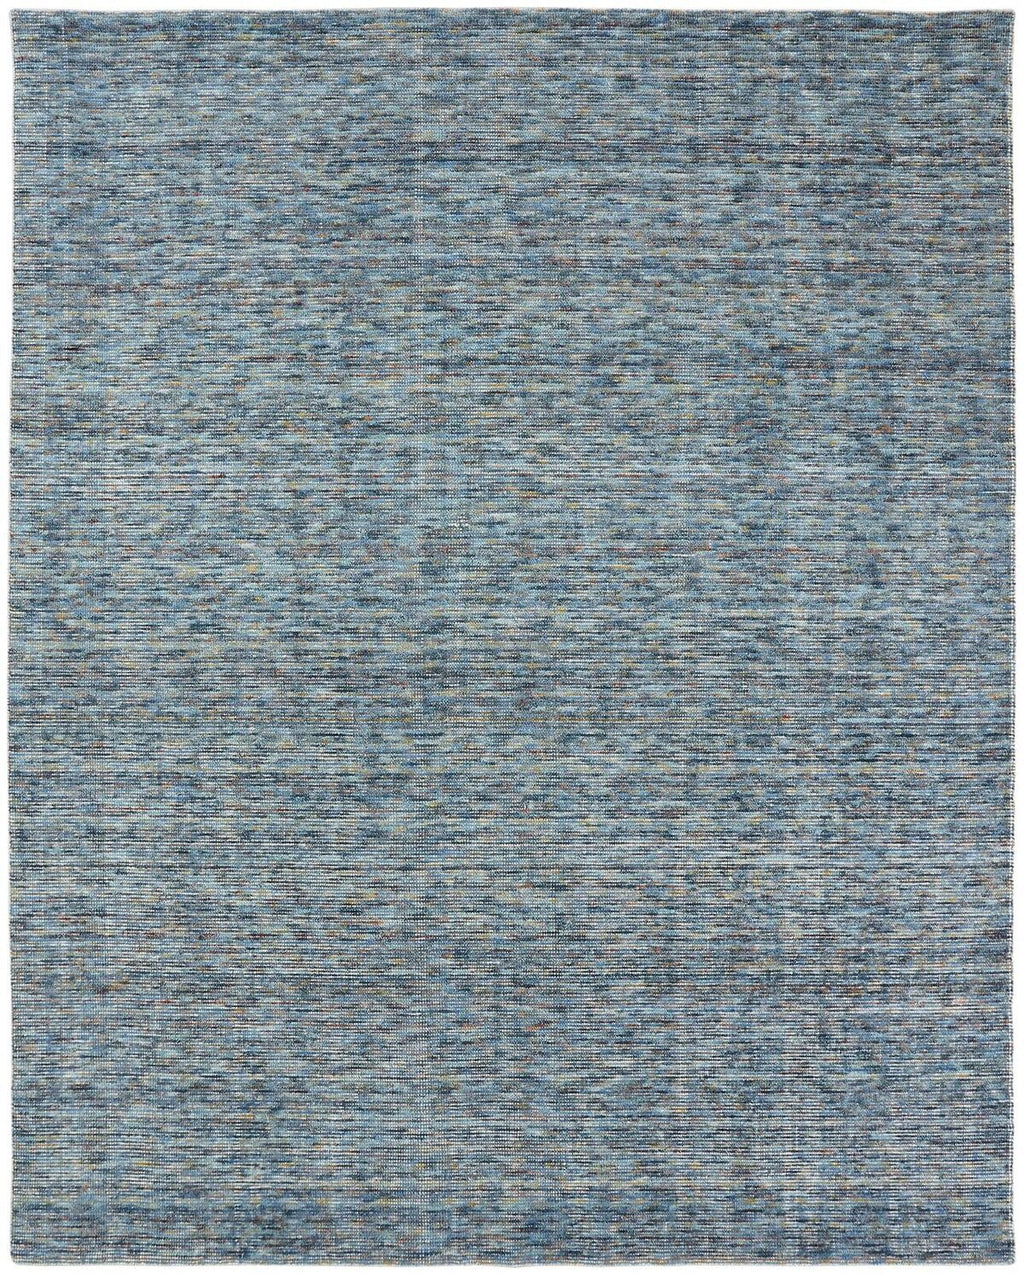 Virgo Mineral Blue Hand-Knotted Area Rug - AllRugs